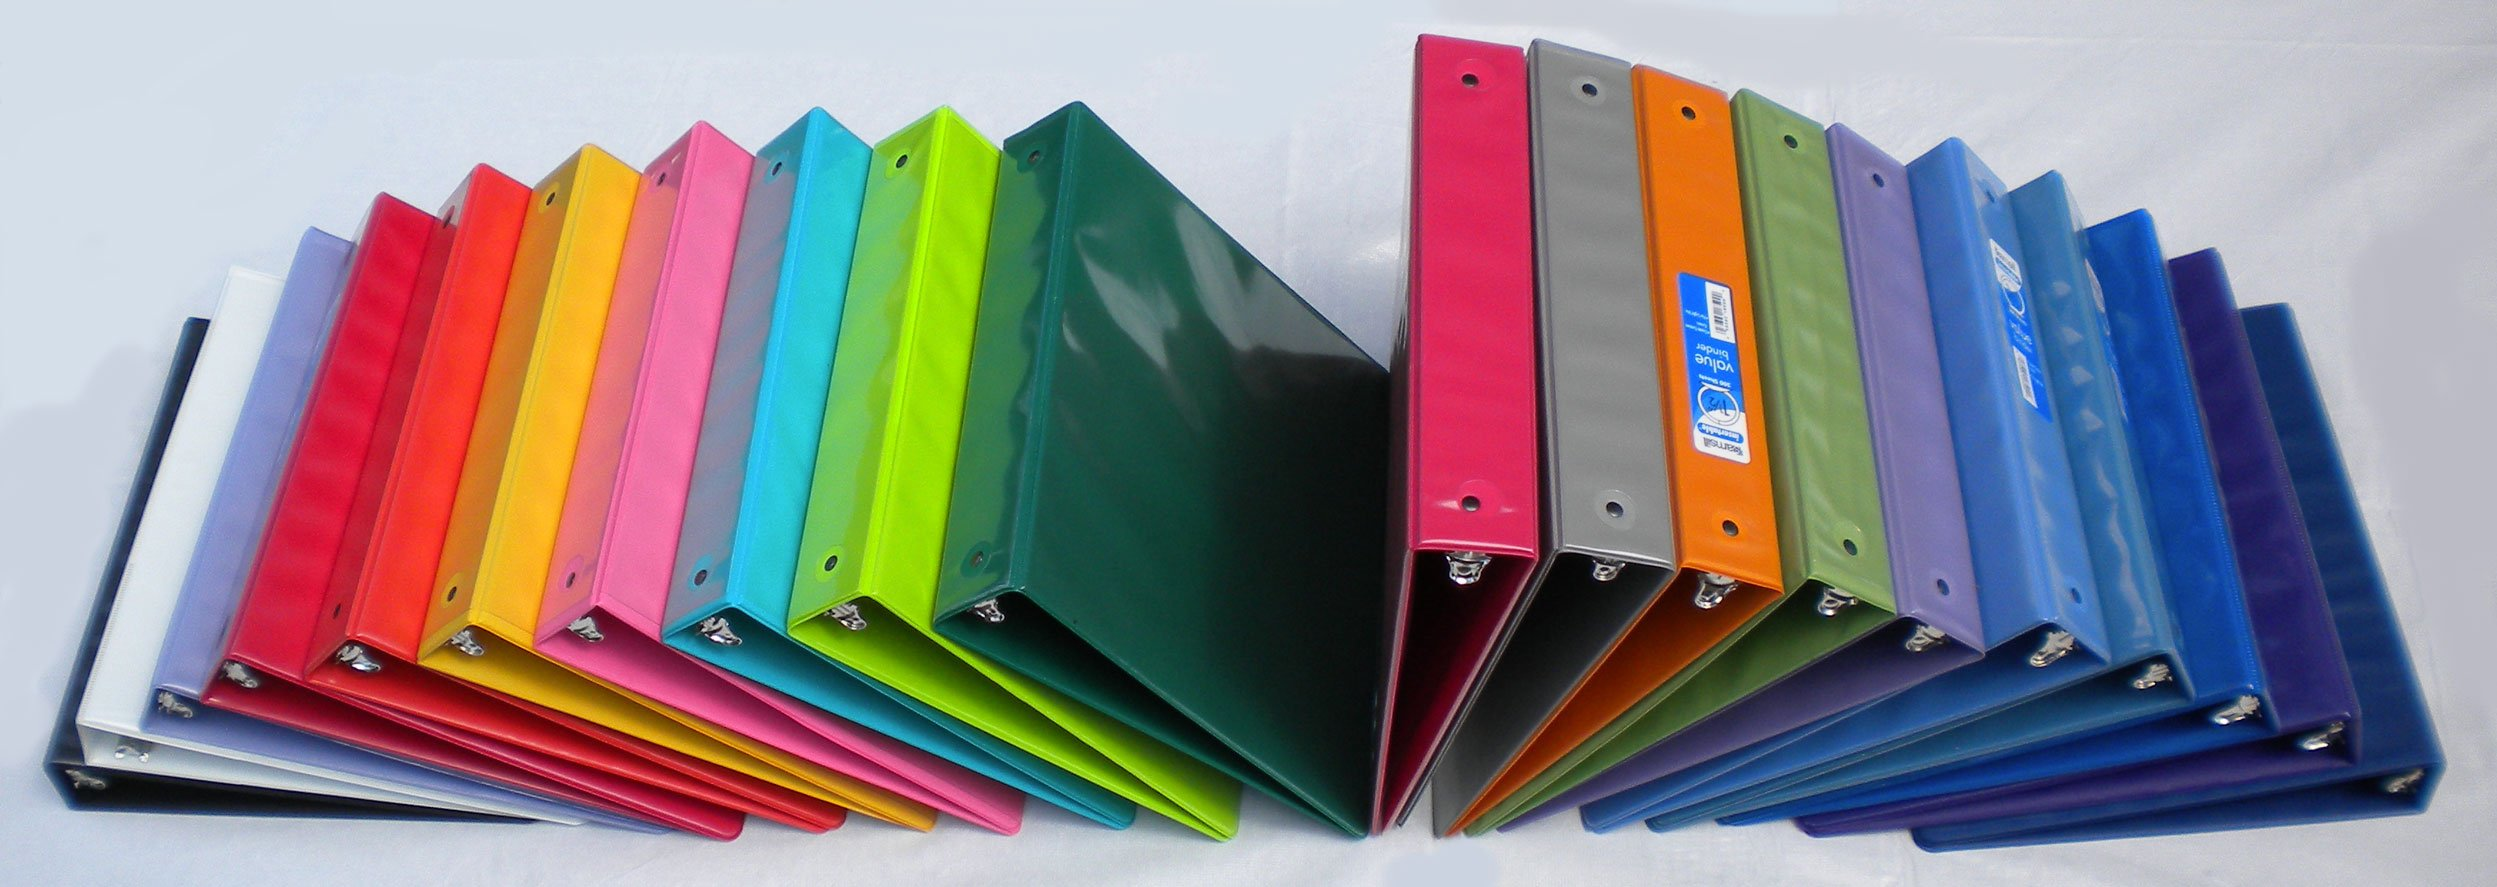 Assorted Colors 3-Ring Binders, 1.5 inch Capacity, 8.5 x 11, Case of 20